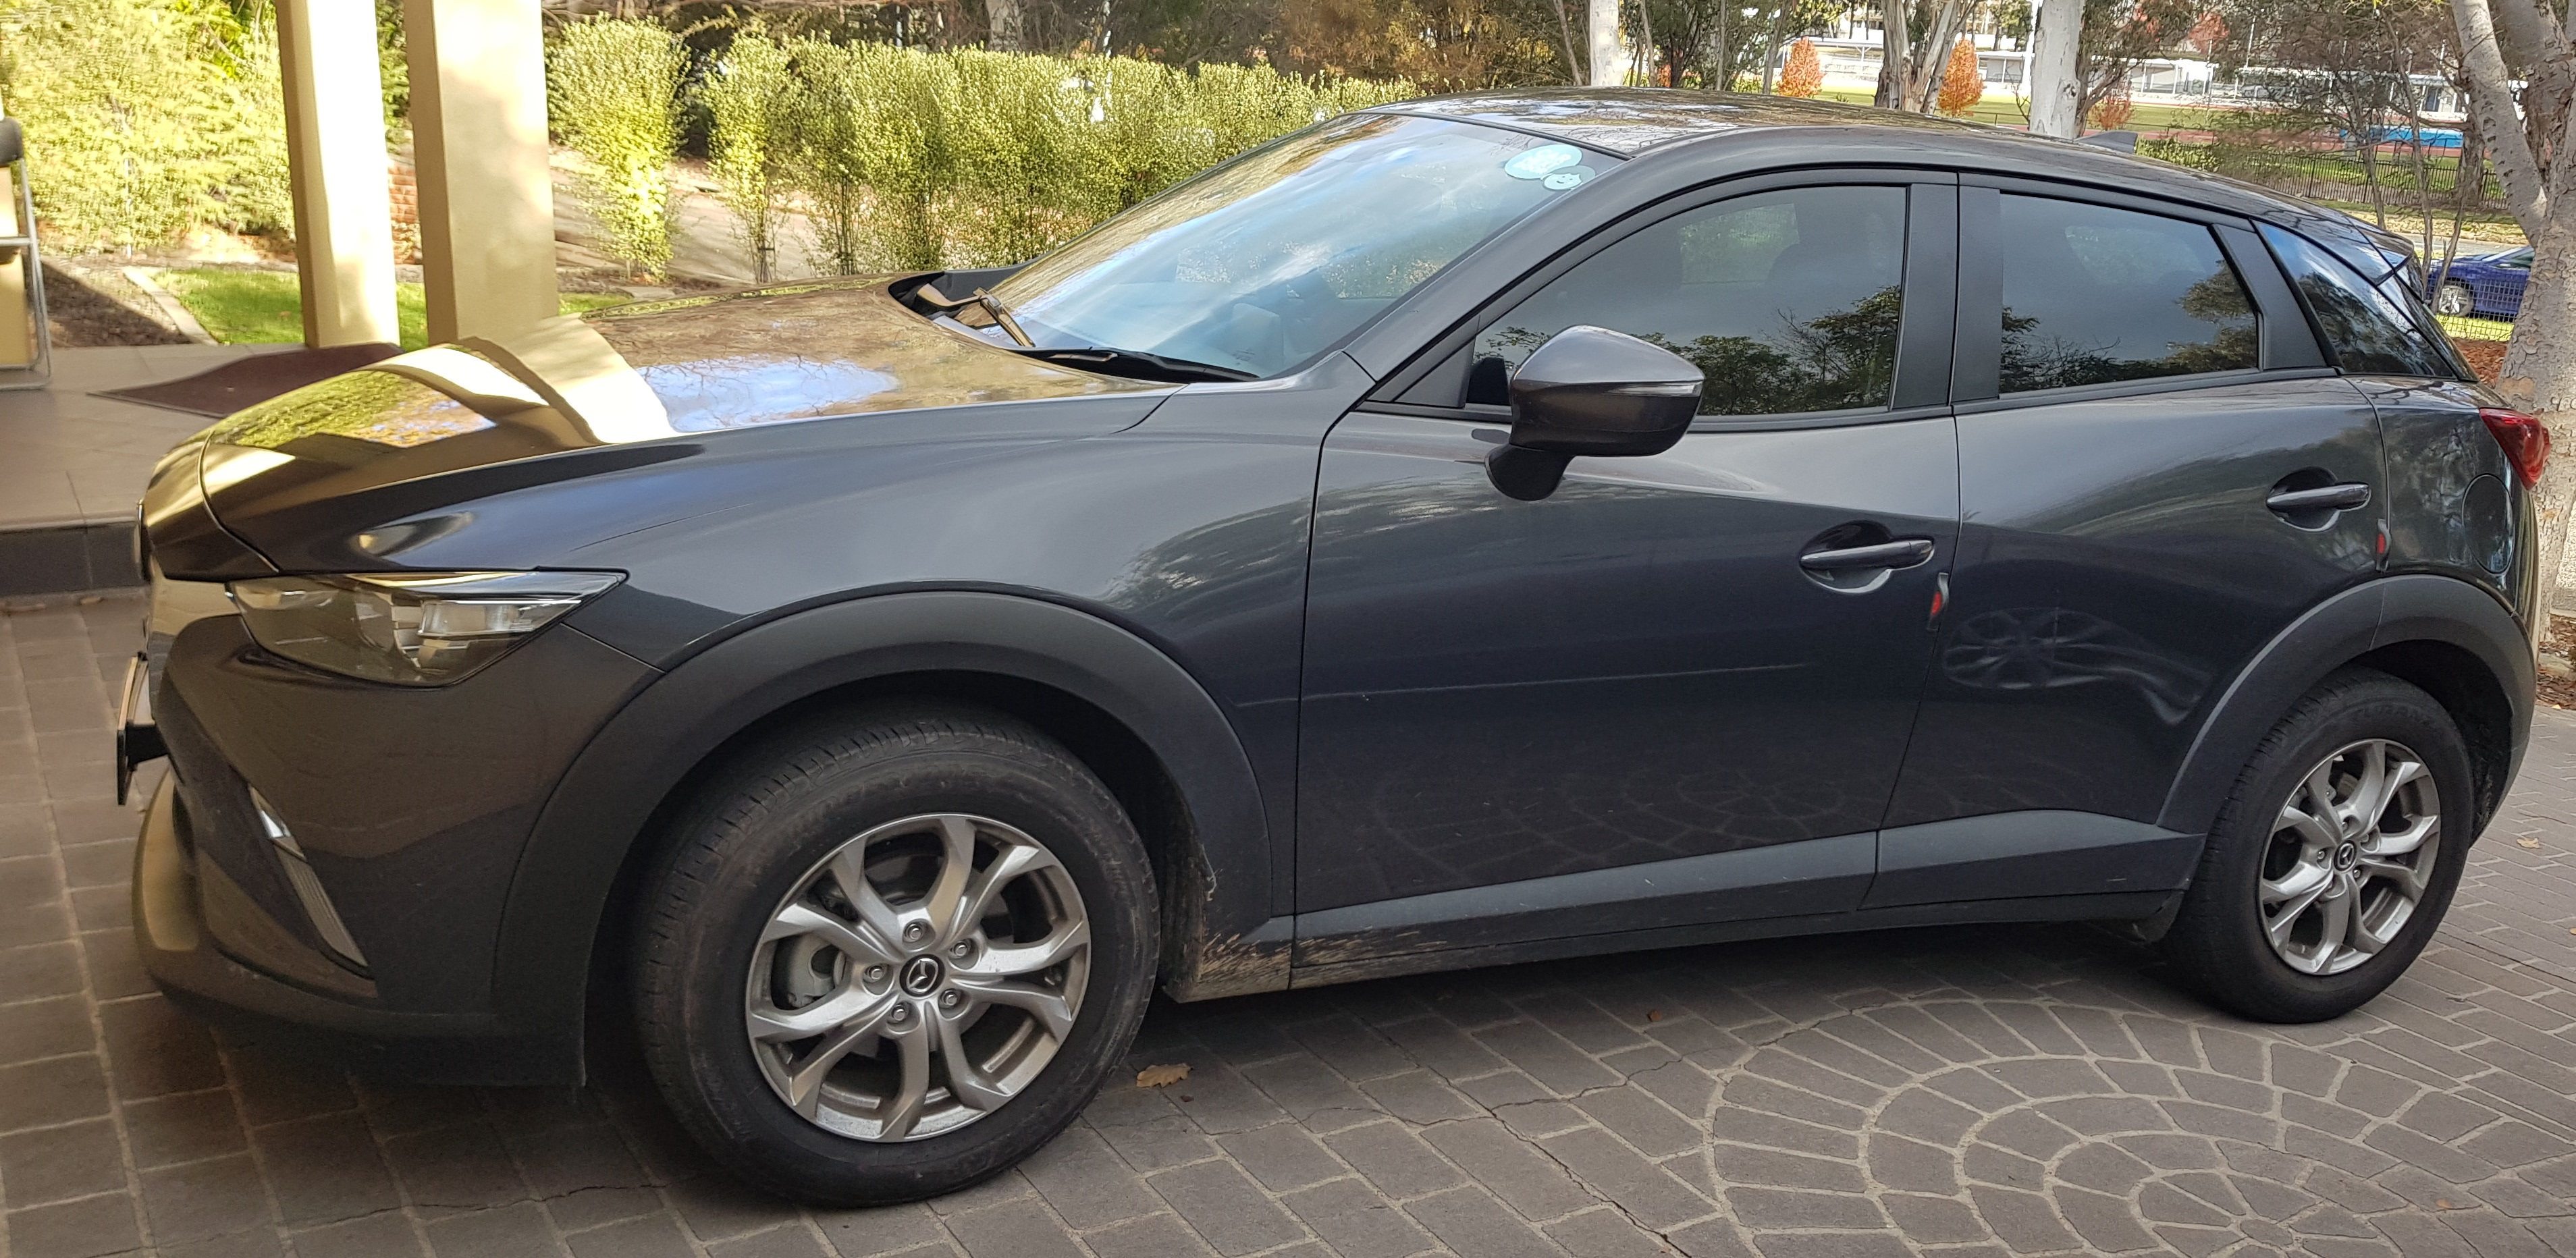 Picture of Saurabh's 2017 Mazda CX3